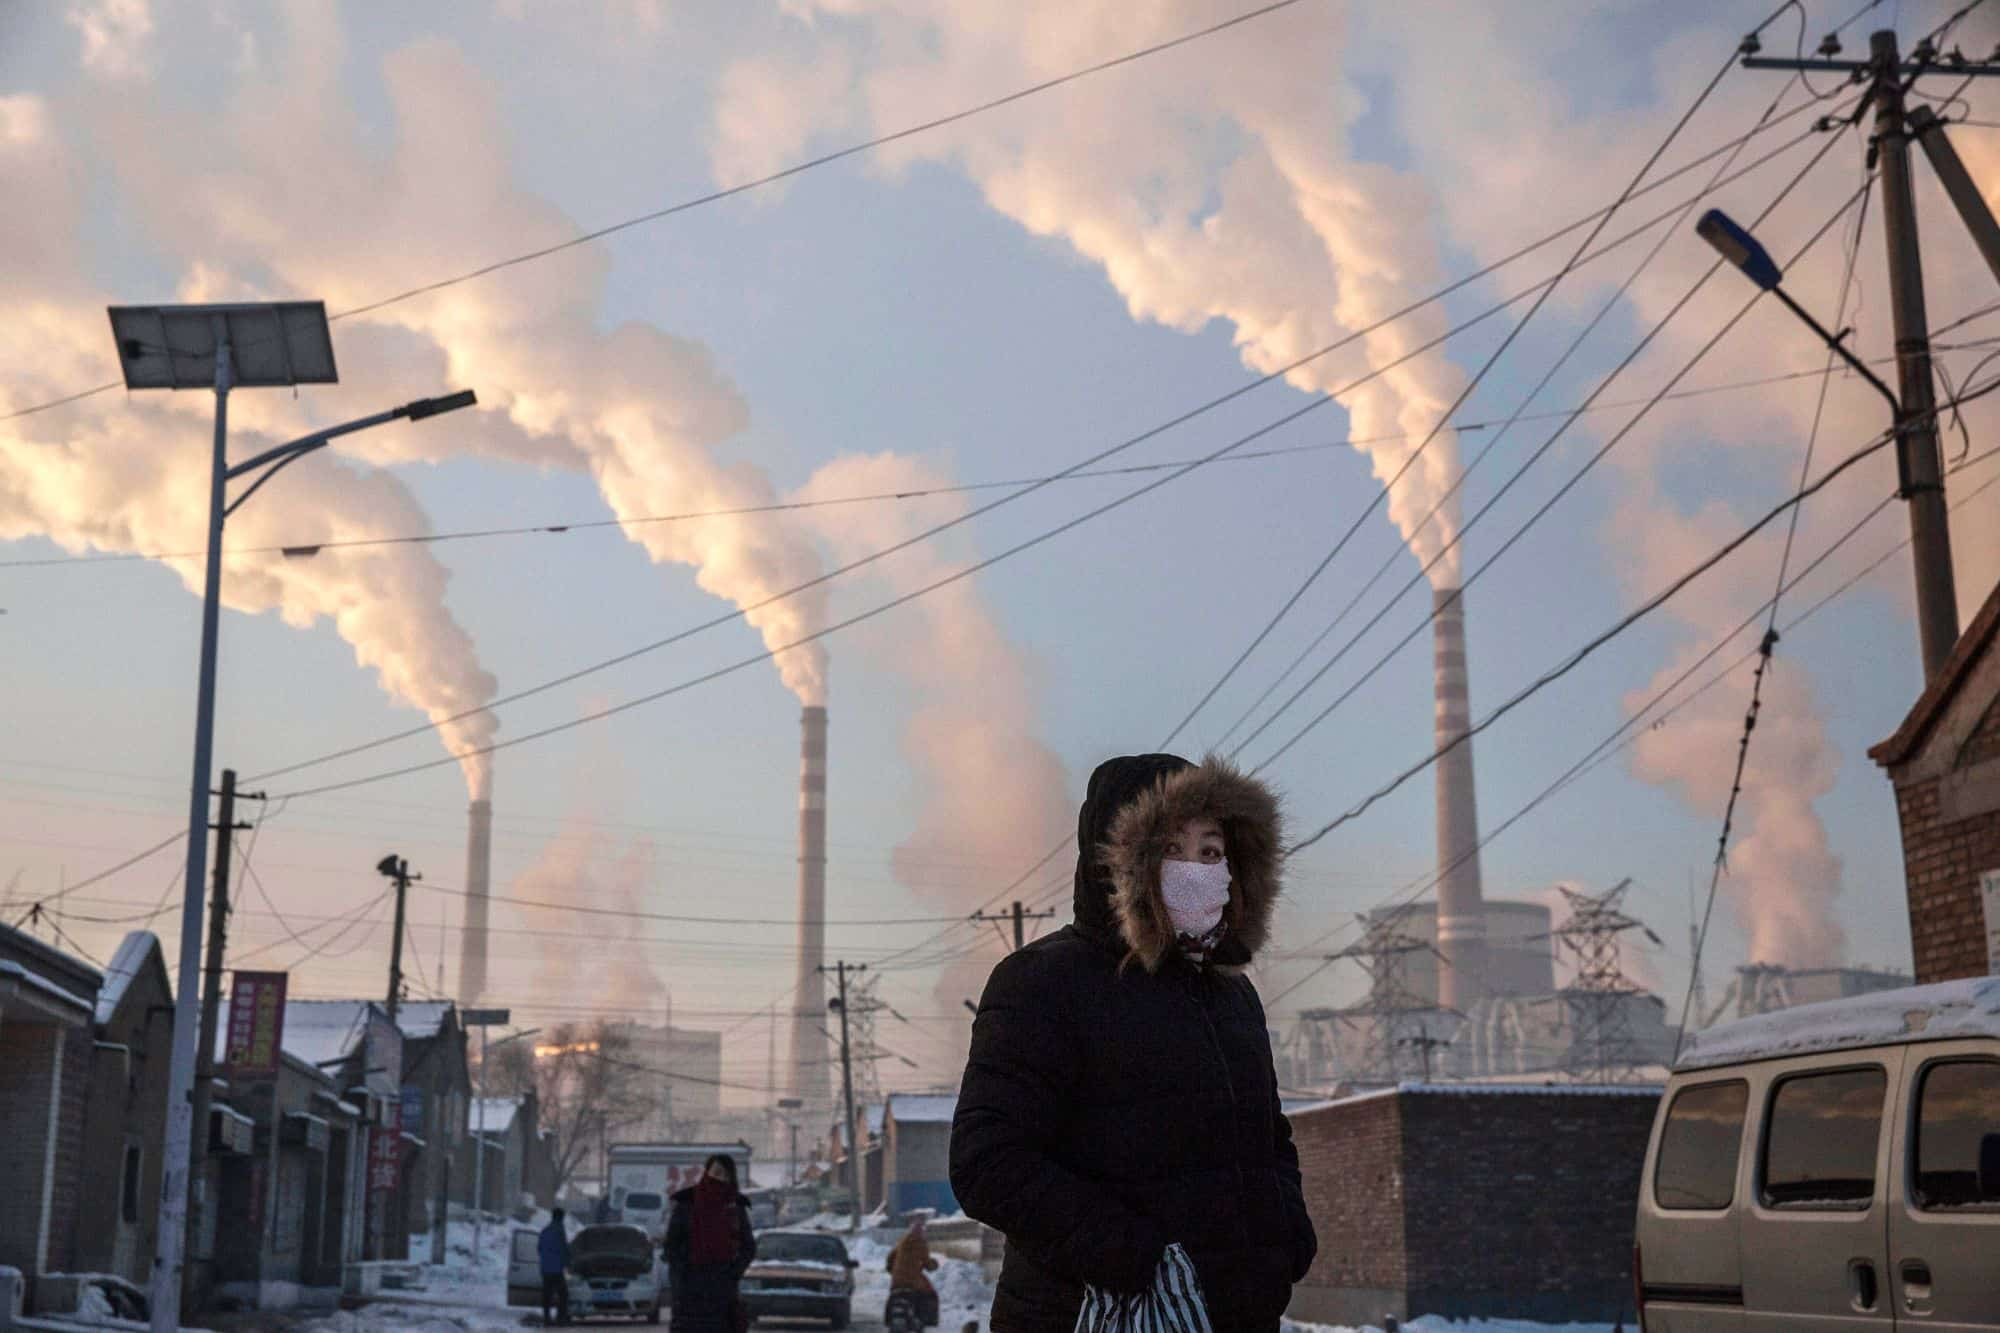 Smoke billows from a coal plant in Shanxi, China, in November 2015. The country has battled to reduce emissions but remains heavily dependent on coal.